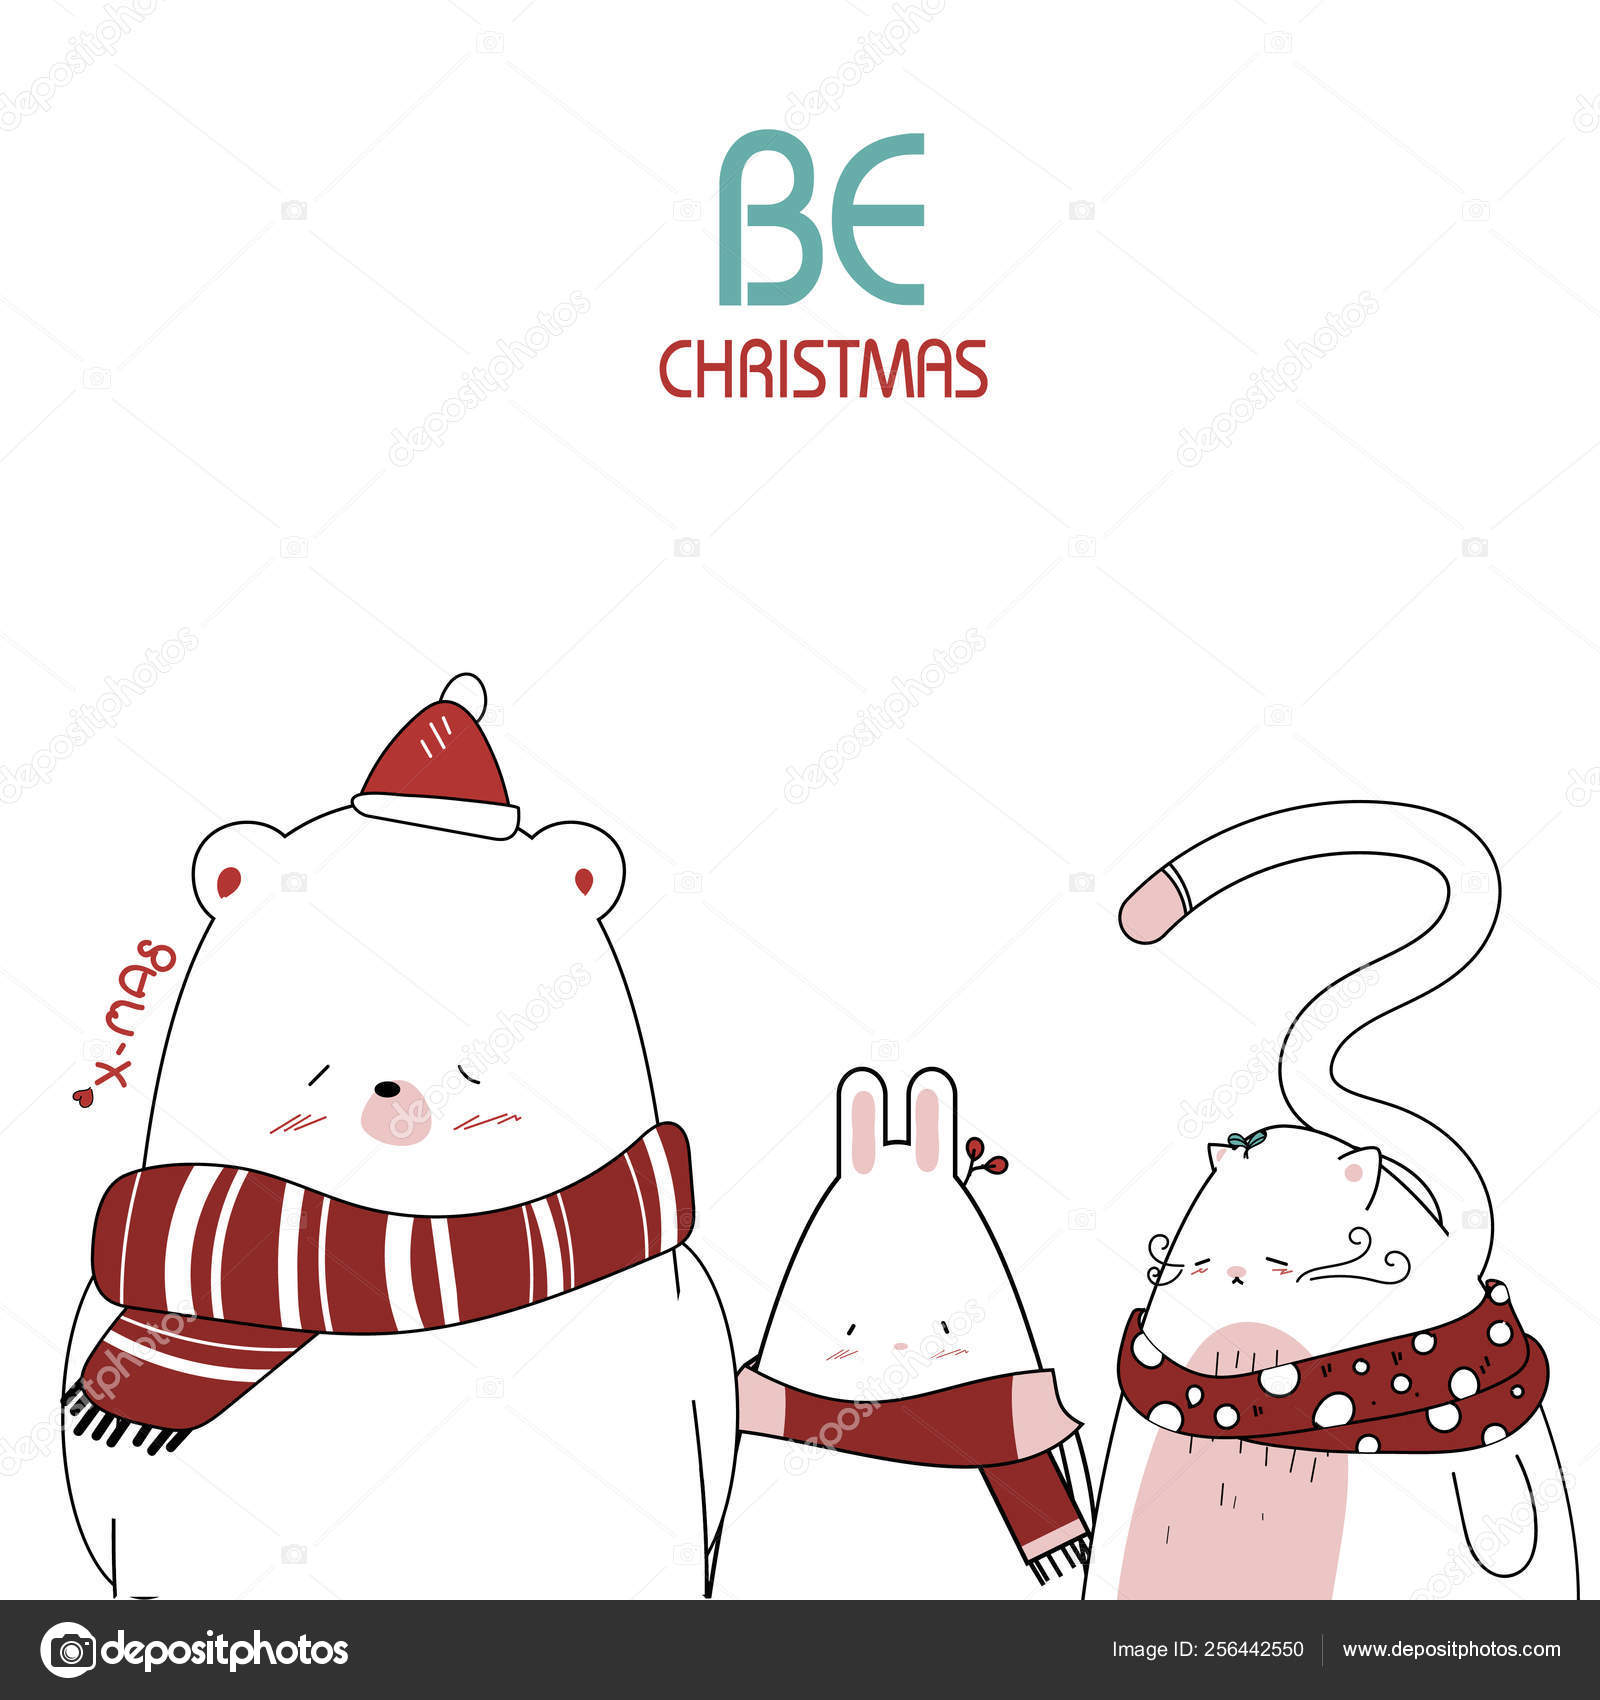 Christmas Day Drawing Images.Draw Cute Animal For Christmas Day Stock Vector